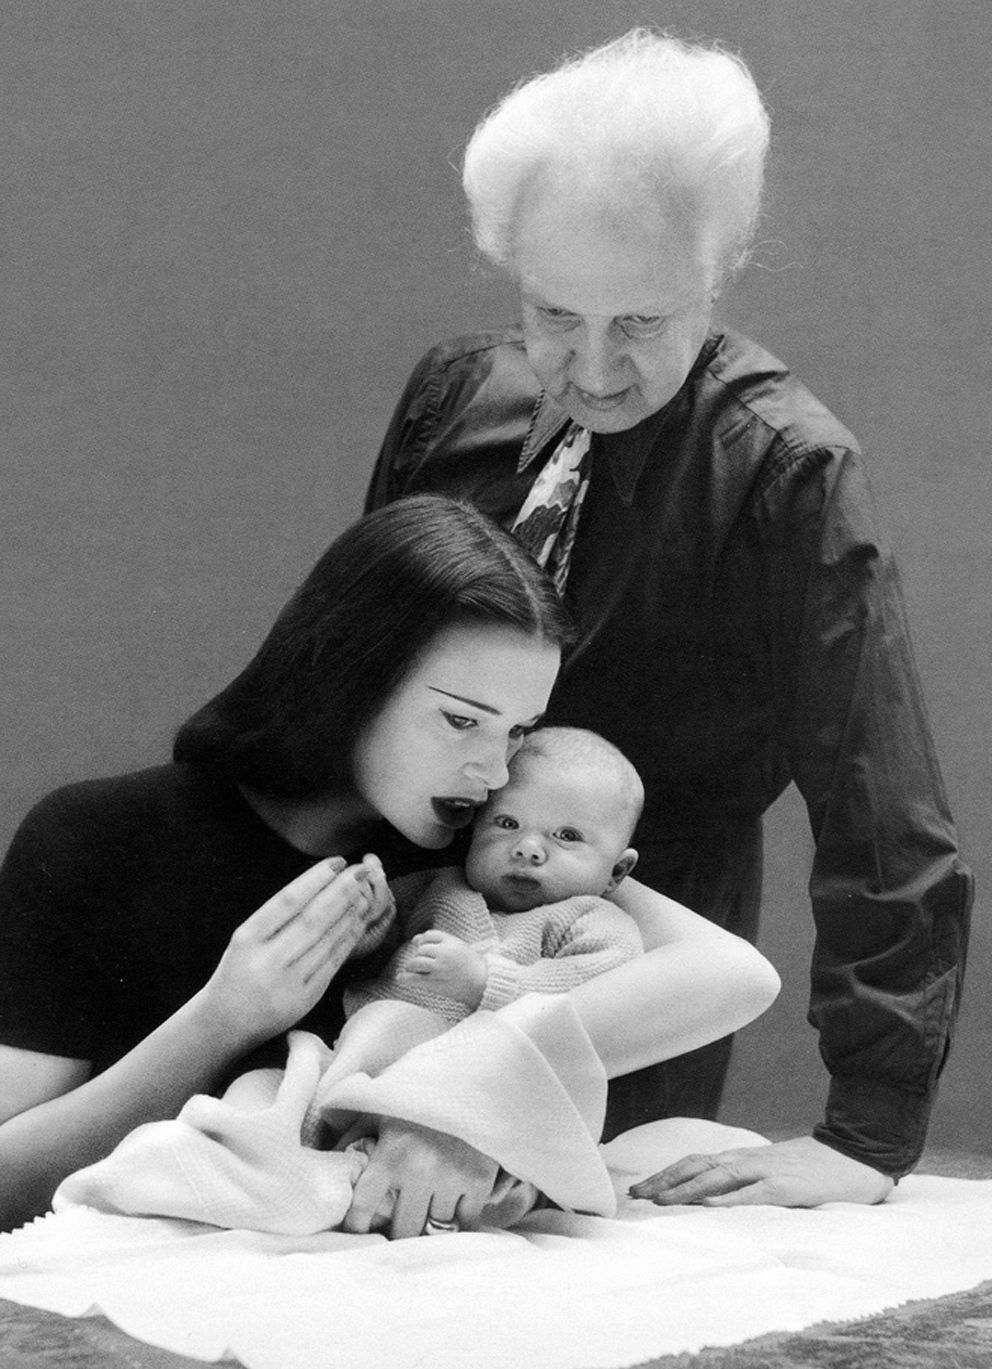 Leopold Stanislaus Stokowski childhood picture with his parents